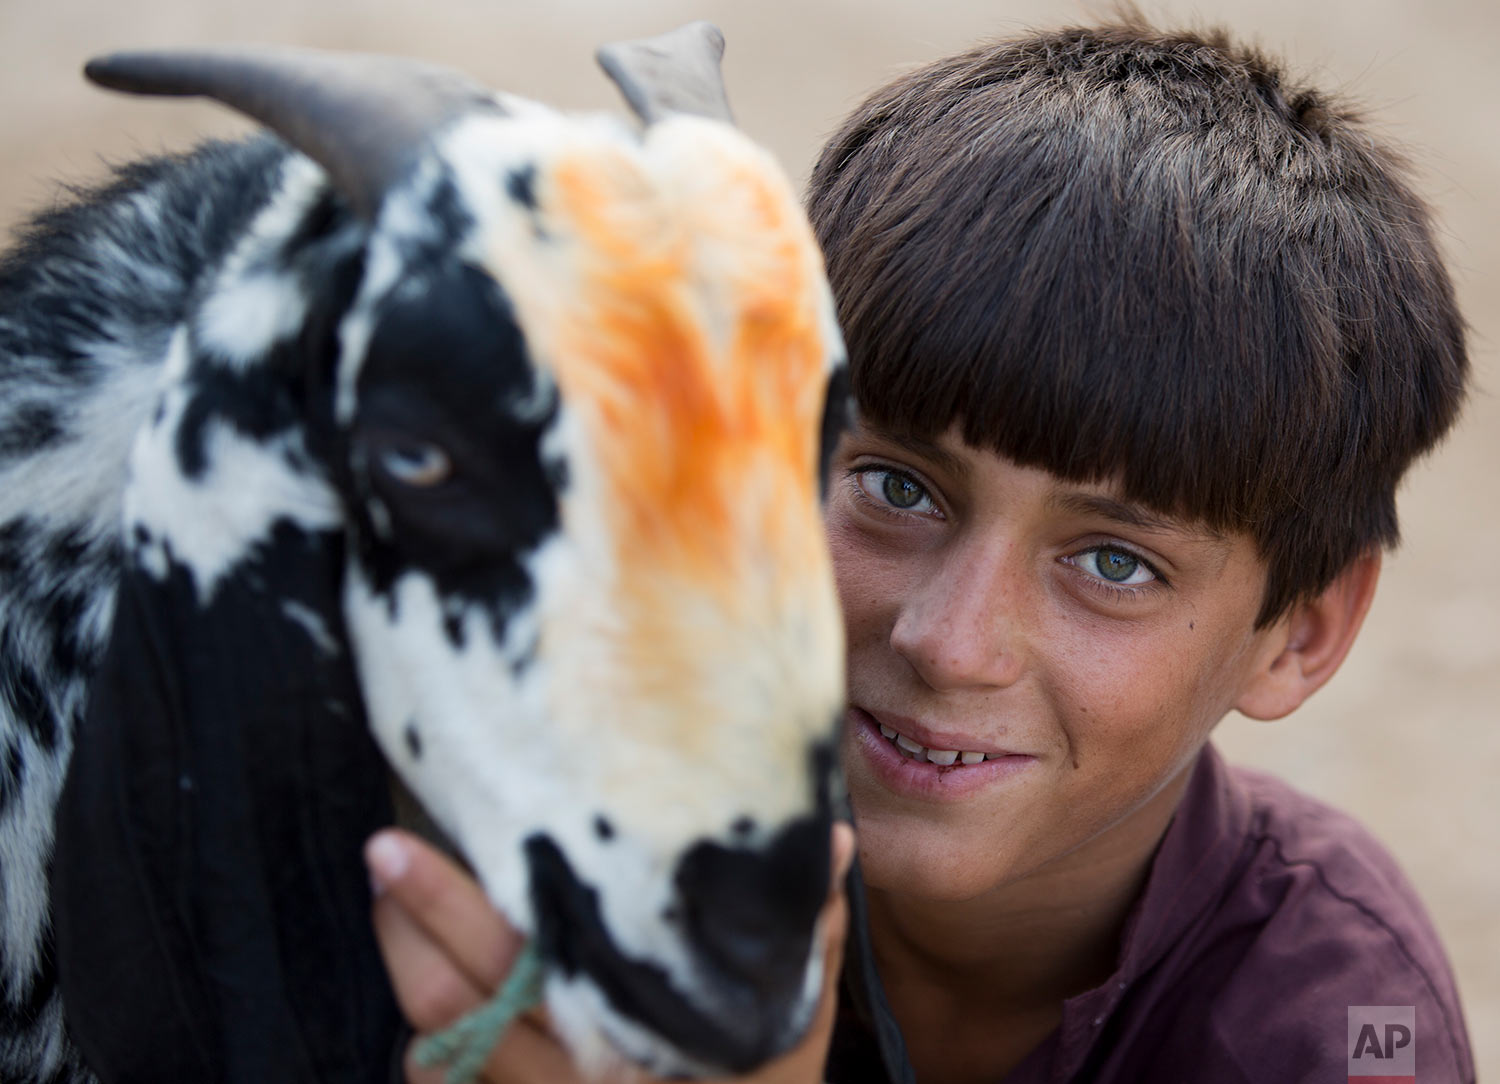 Ibrahim poses with his animal at a cattle market ahead of Muslim Eid al-Adha holiday in Islamabad, Pakistan, Friday, Aug. 25, 2017.(AP Photo/B.K. Bangash)